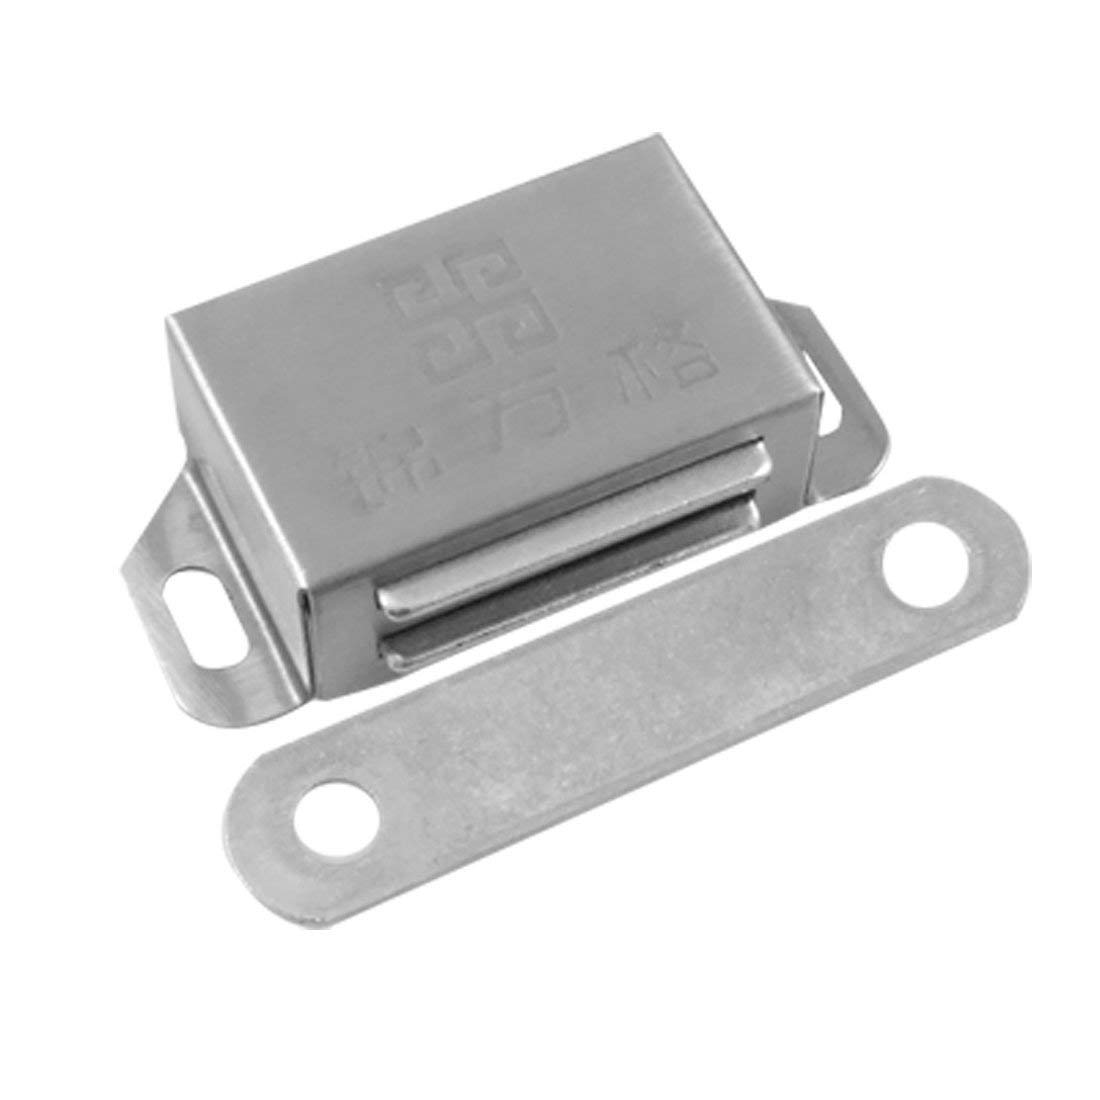 """Aexit Metal Silver Cabinet Hardware Tone 2.1"""" Length Catch Latch for Catches Cabinet Cupboard"""